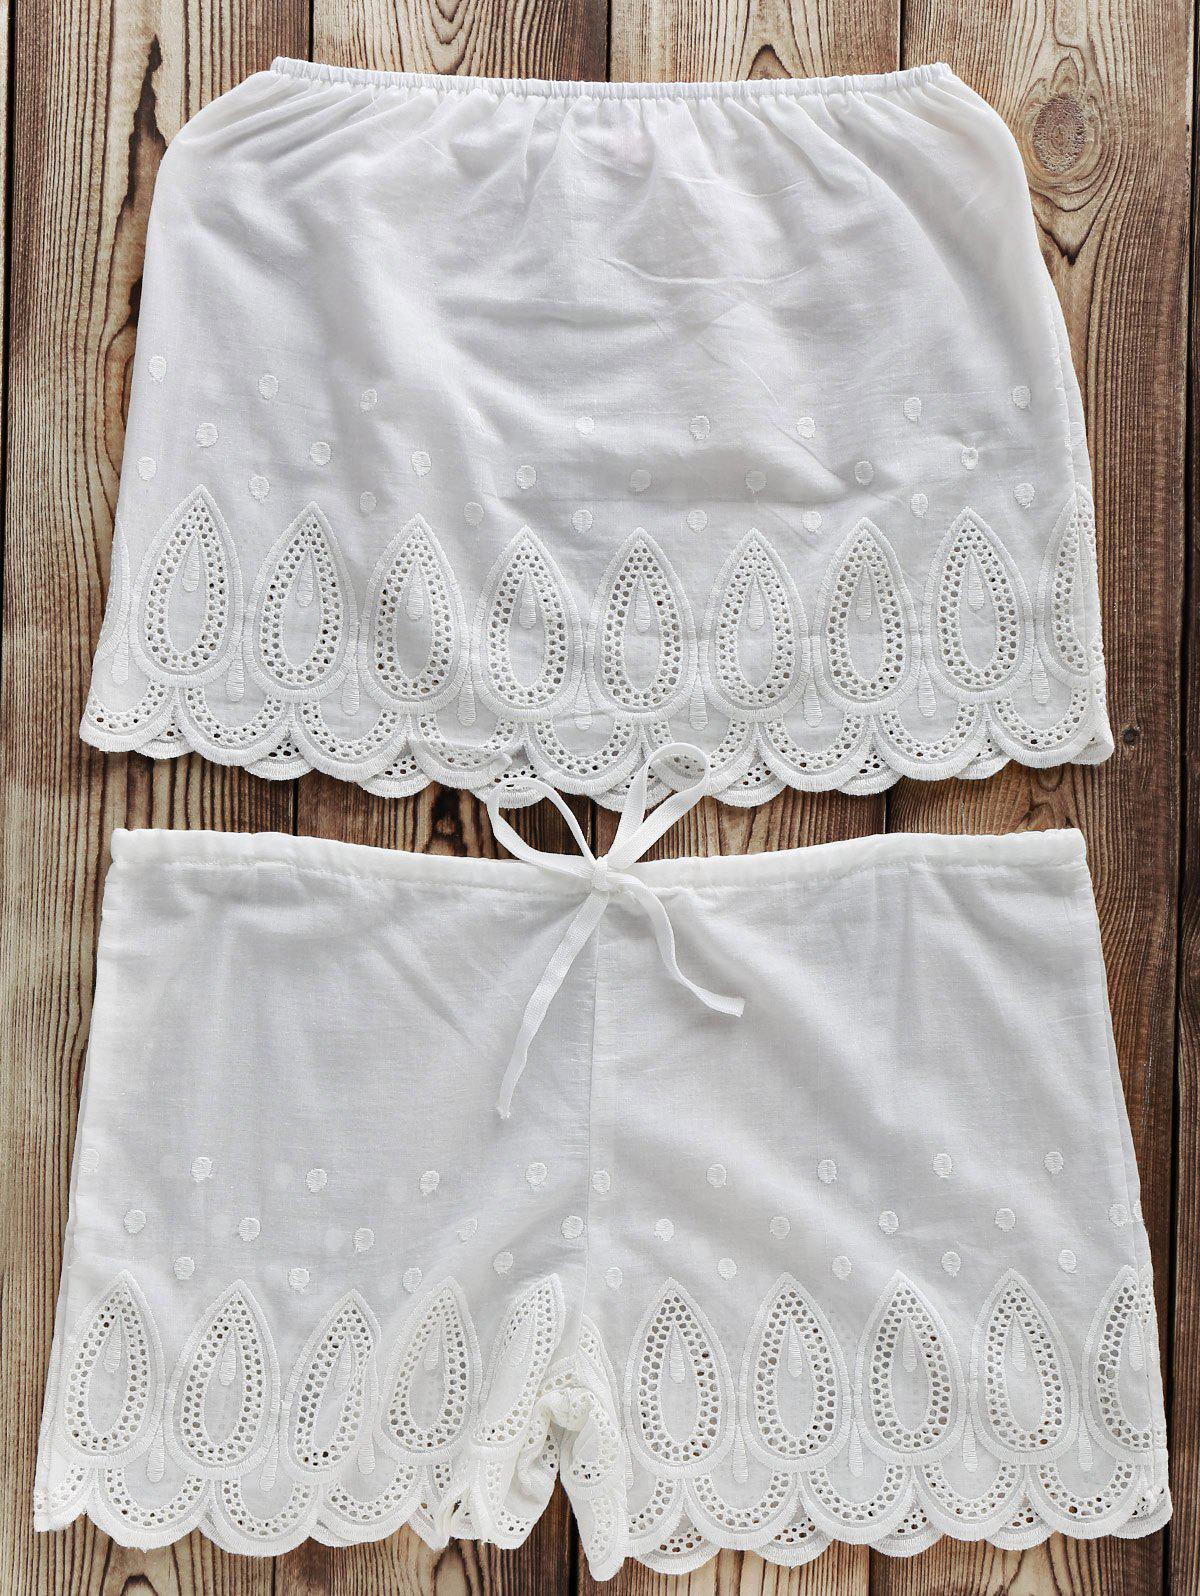 Simple White Strapless Tube Top + Solid Color Drawstring Shorts Women's Twinset